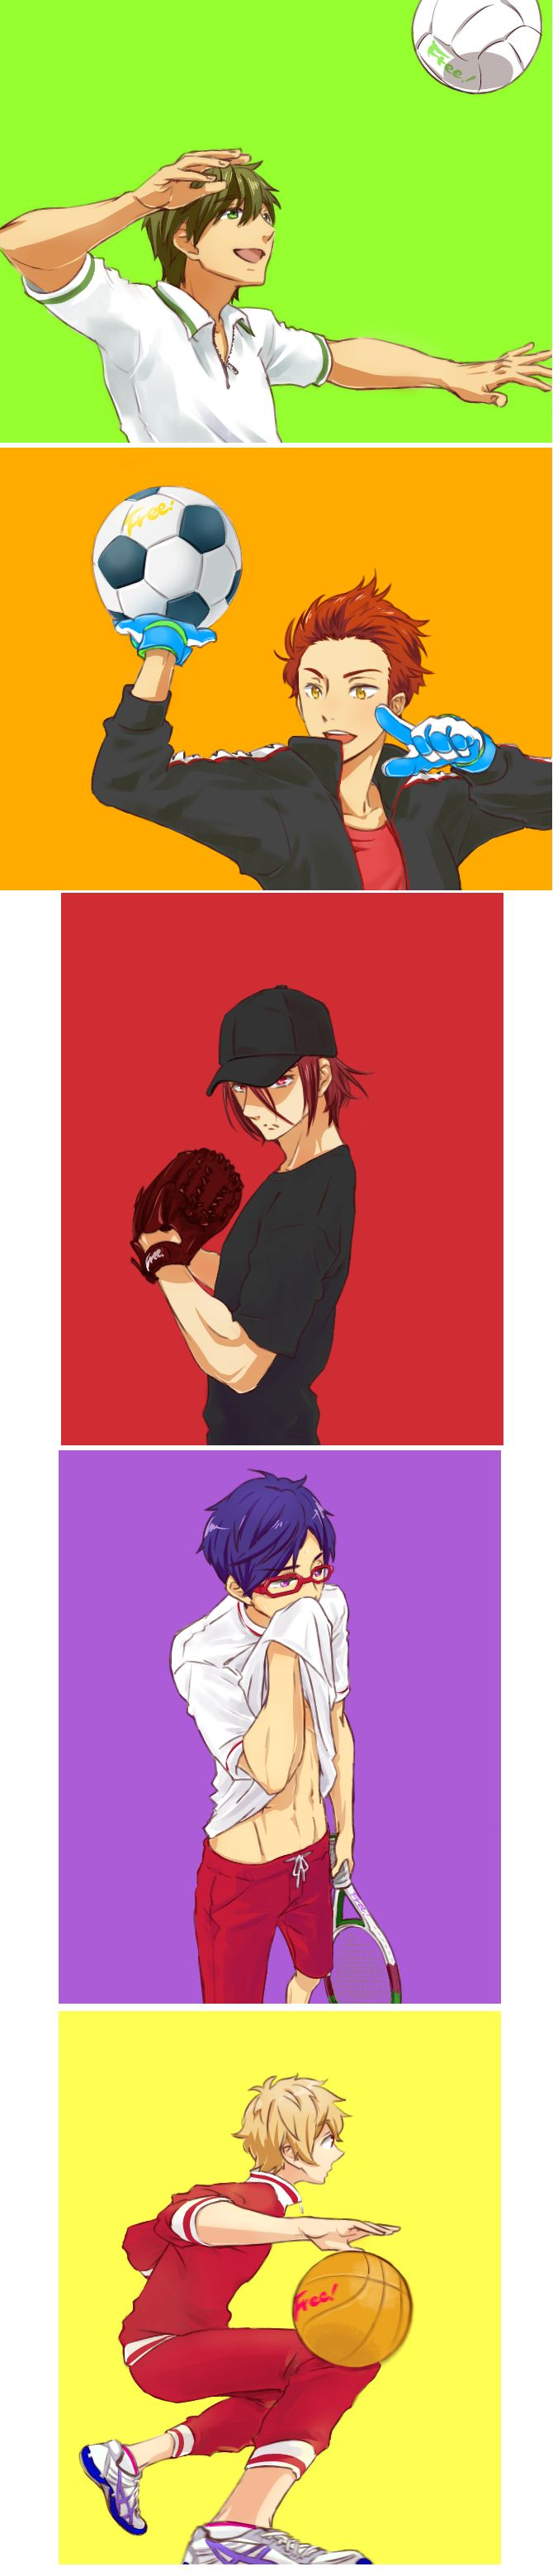 Free! ~~ Taking time to play other sports